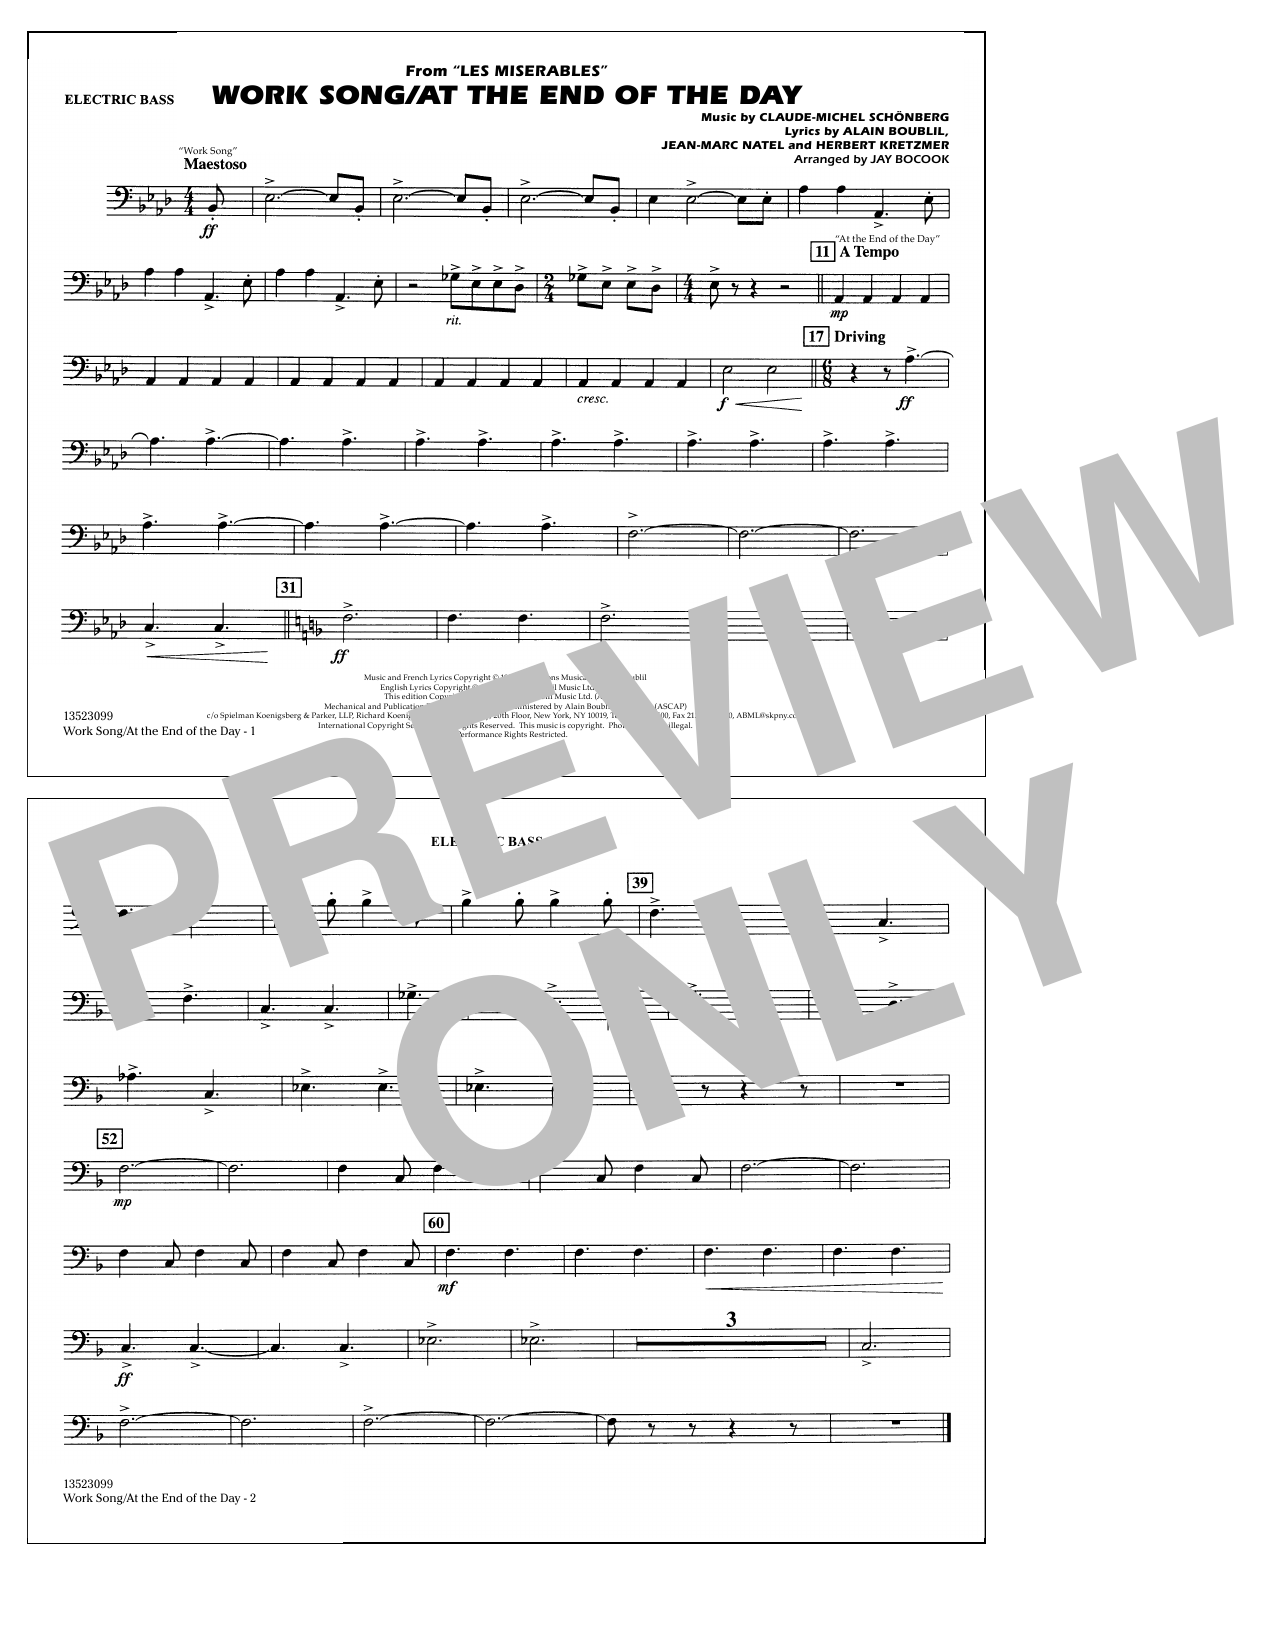 Work Song/At the End of the Day (Les Misérables) (arr. Jay Bocook) - Electric Bass (Marching Band)